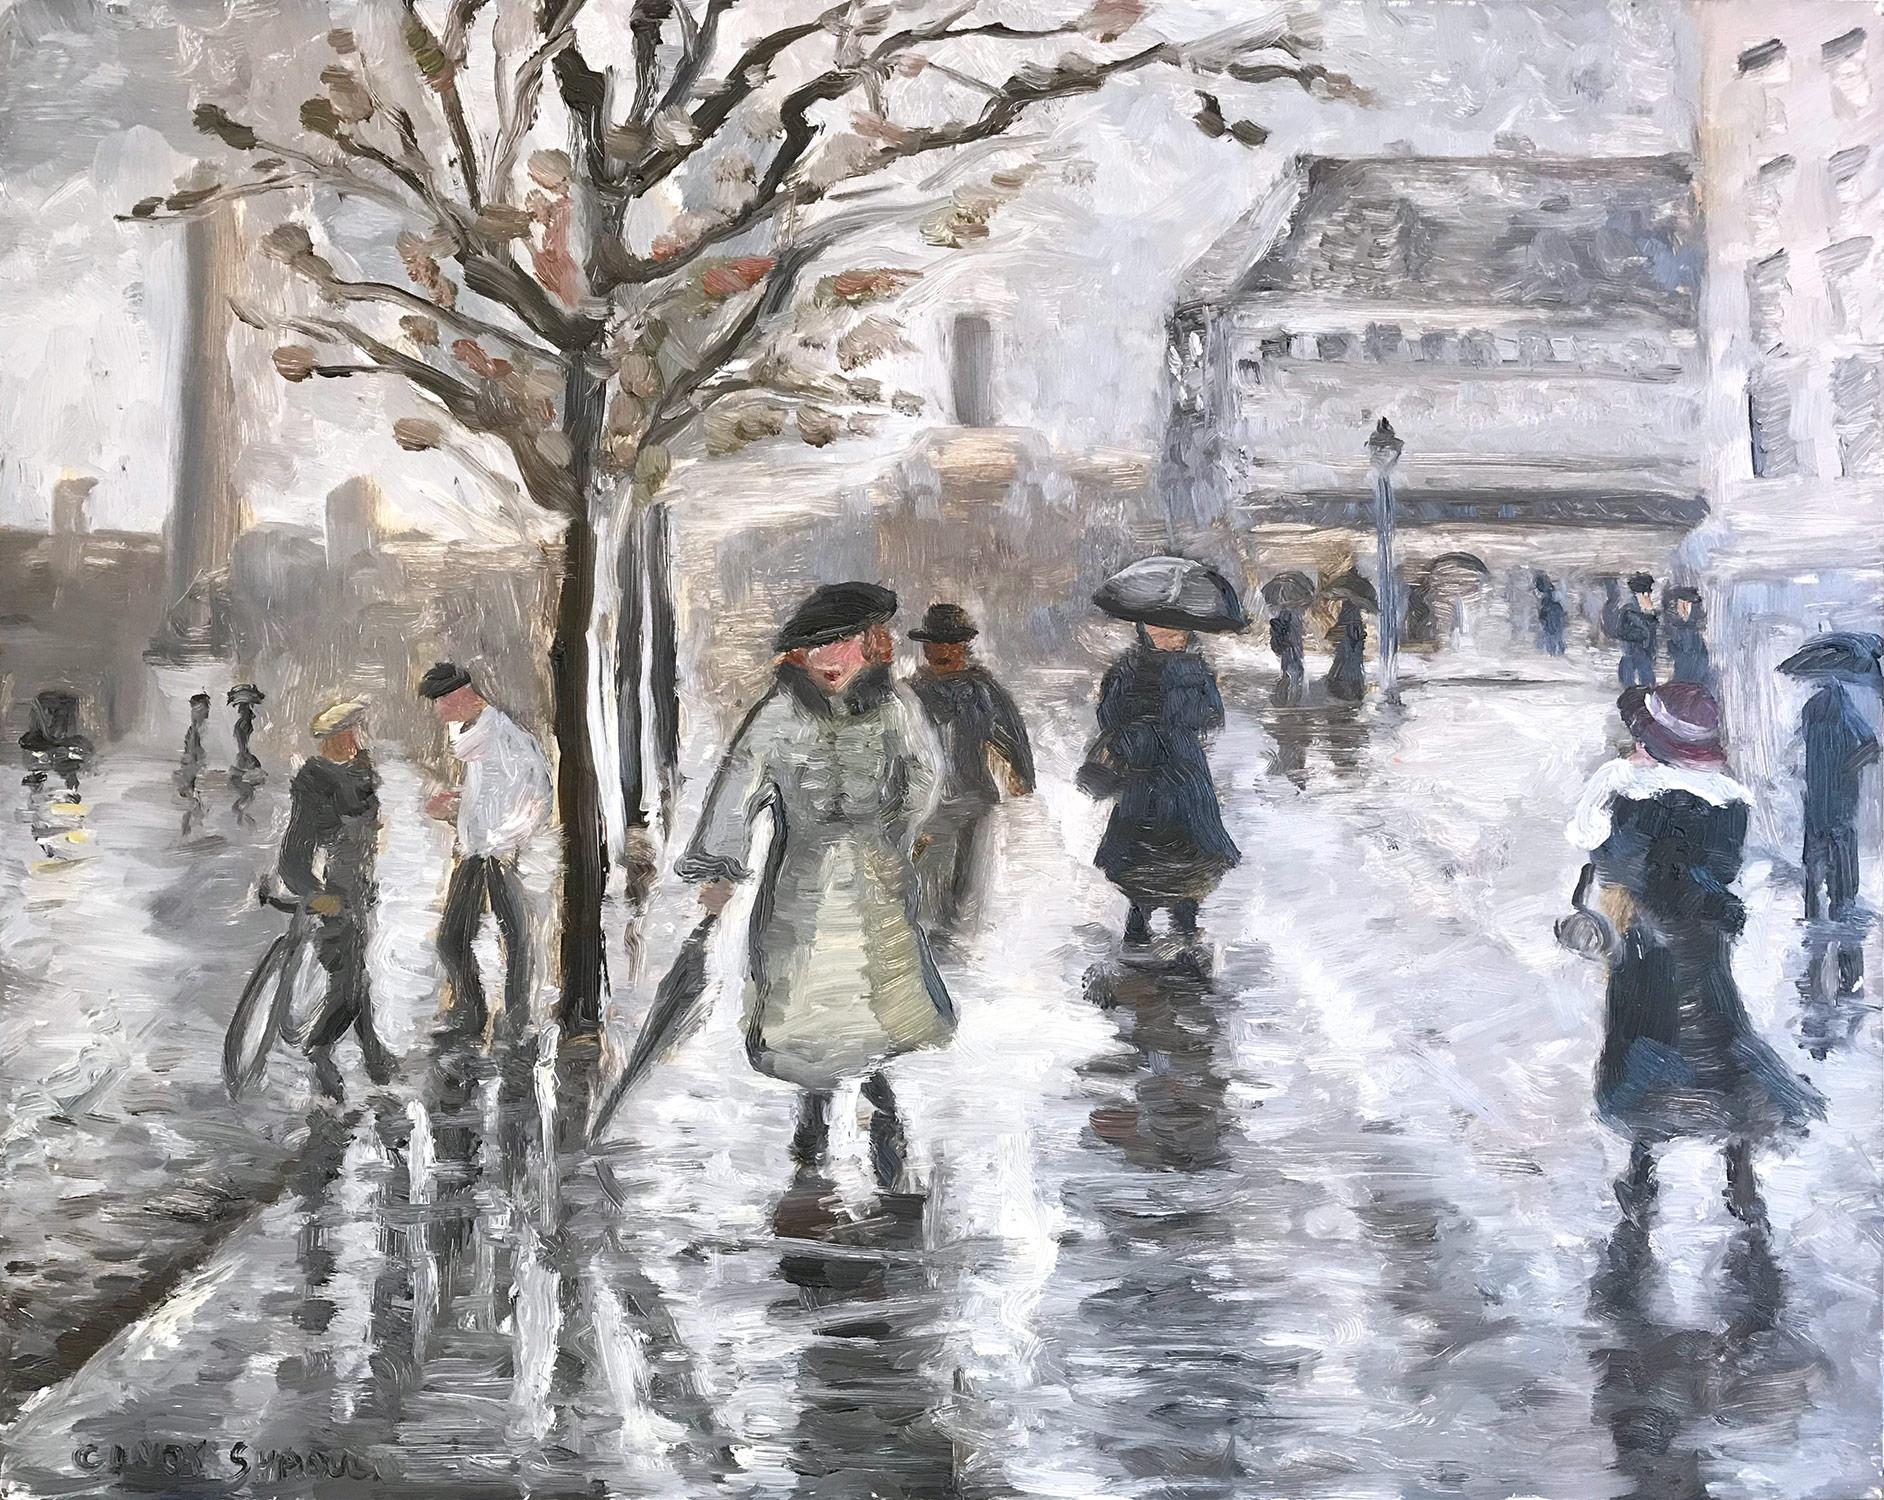 Impressionist City Street Scene with snow and figures in style of Manet